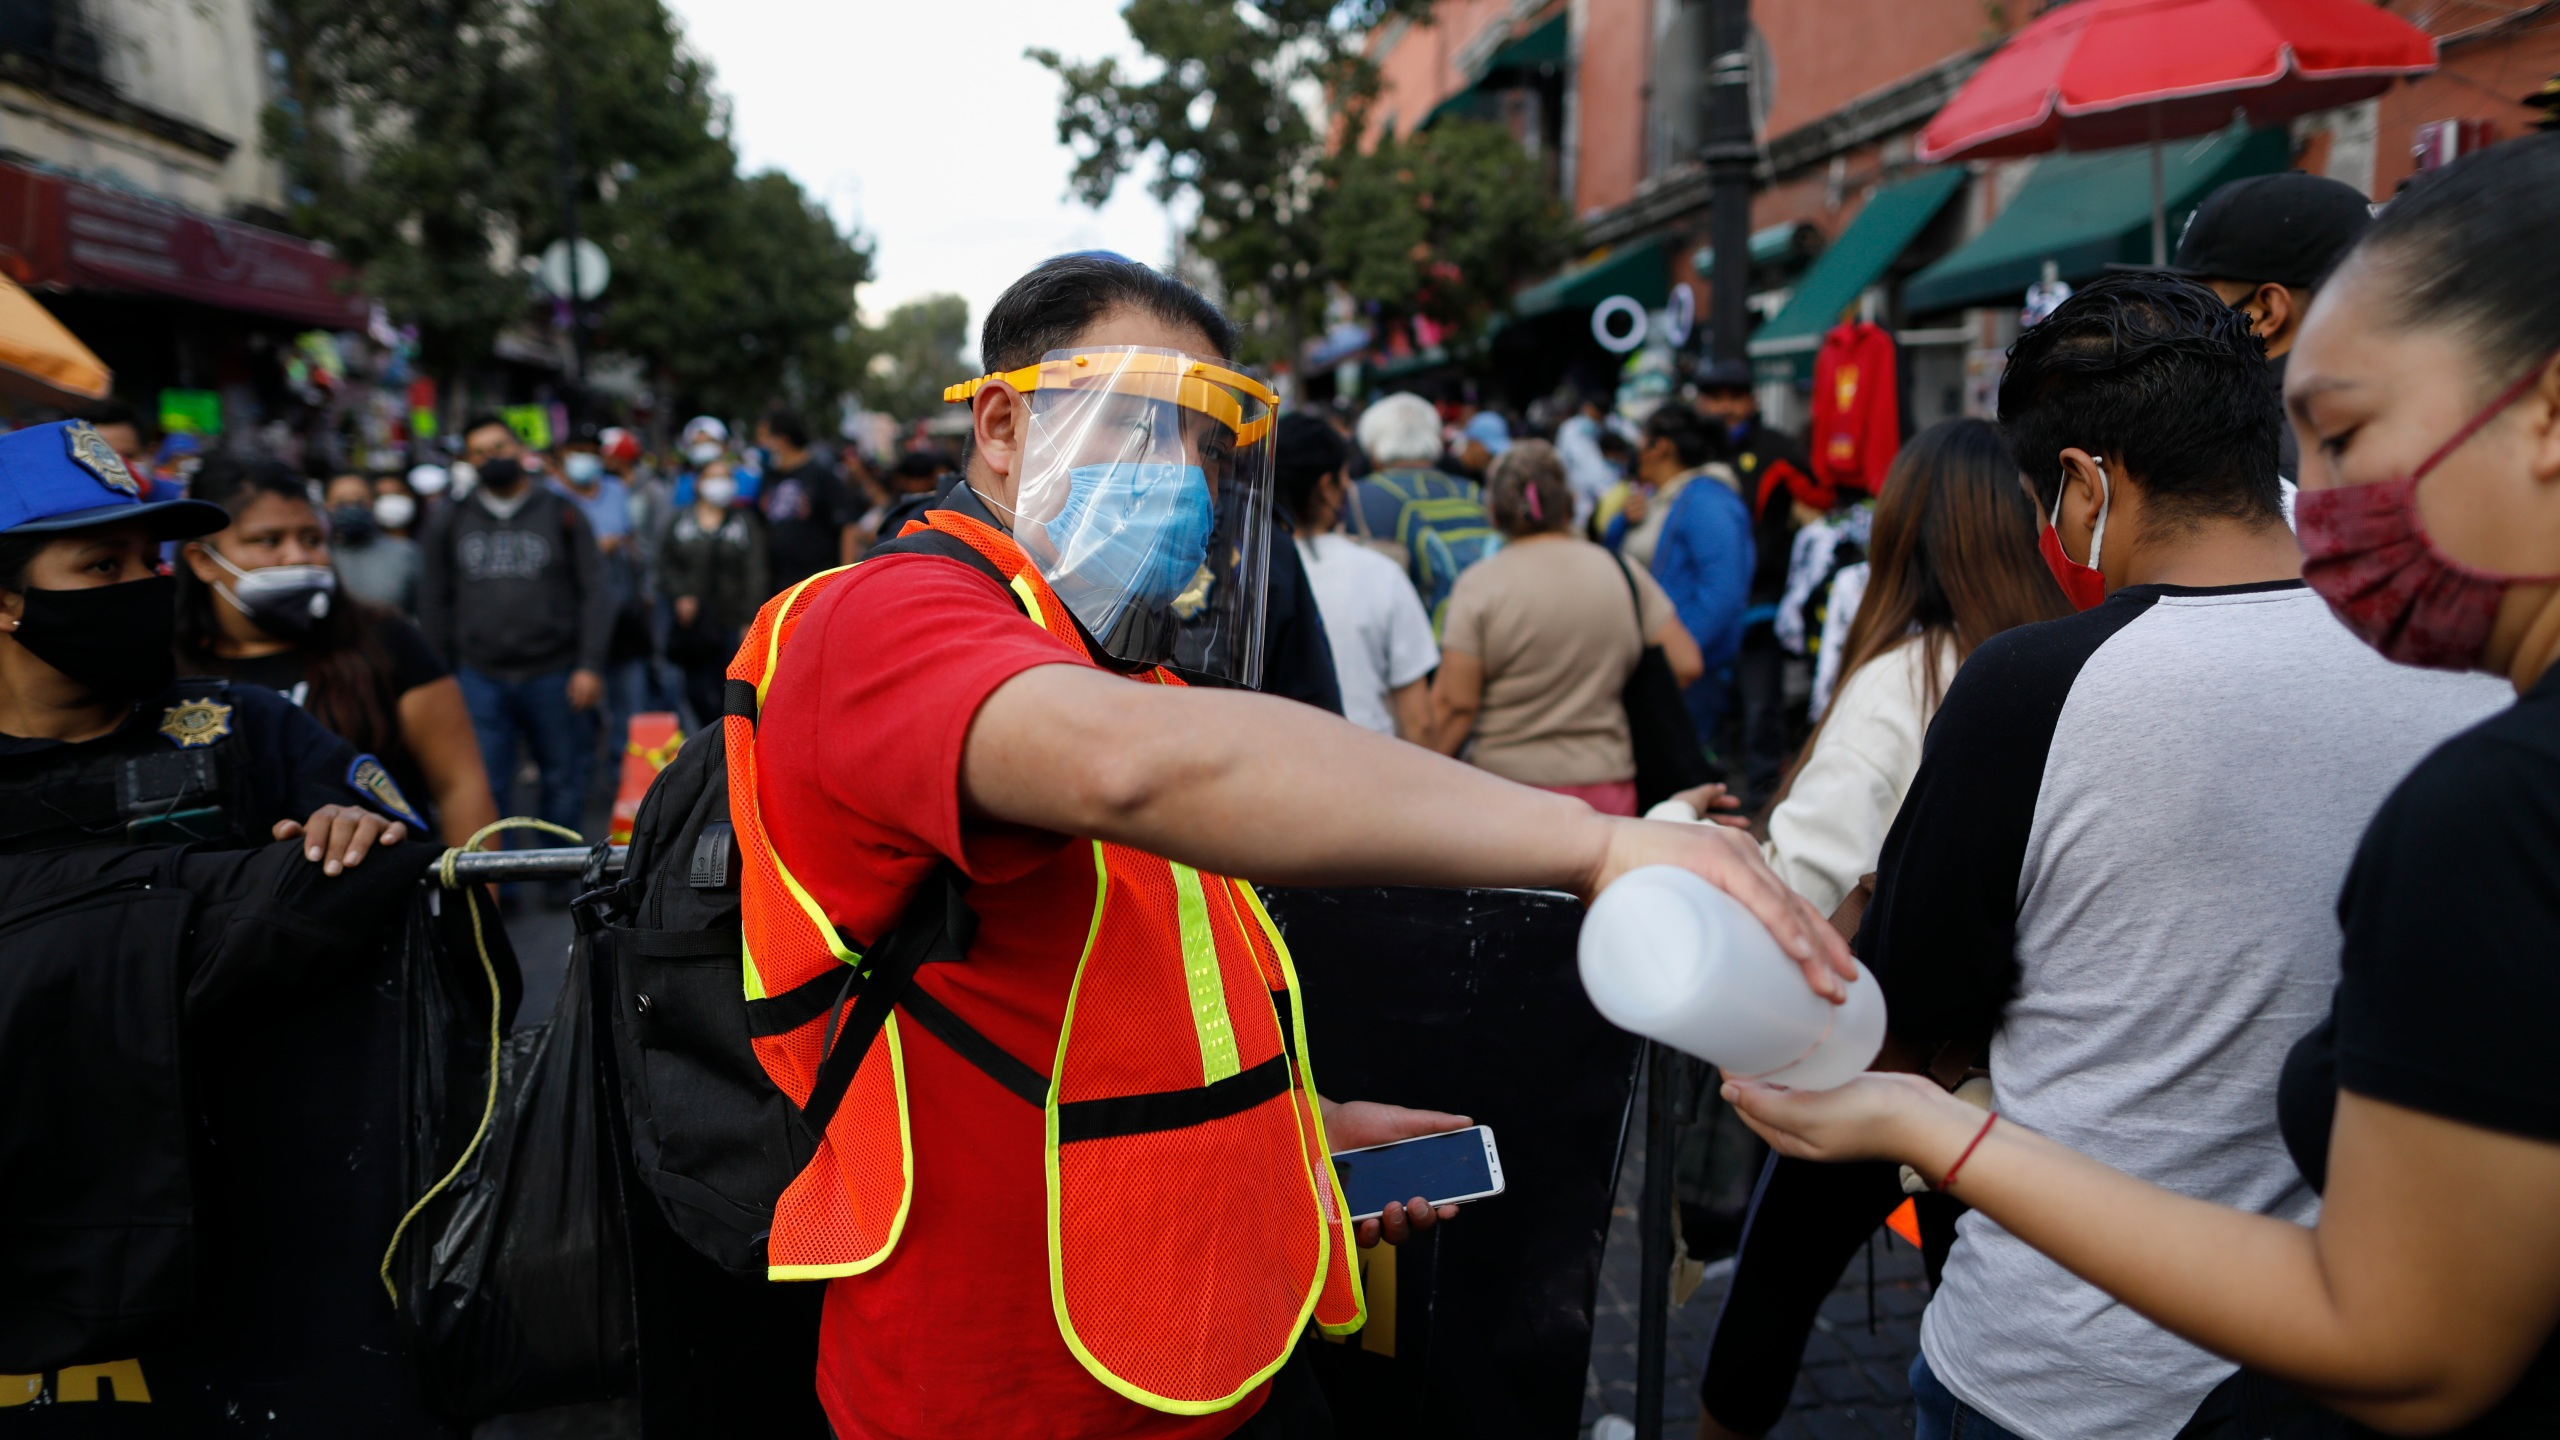 A city worker offers antibacterial gel to passing shoppers as they walk in a crowded commercial district of central Mexico City, Saturday, Dec. 5, 2020. (AP Photo/Rebecca Blackwell)